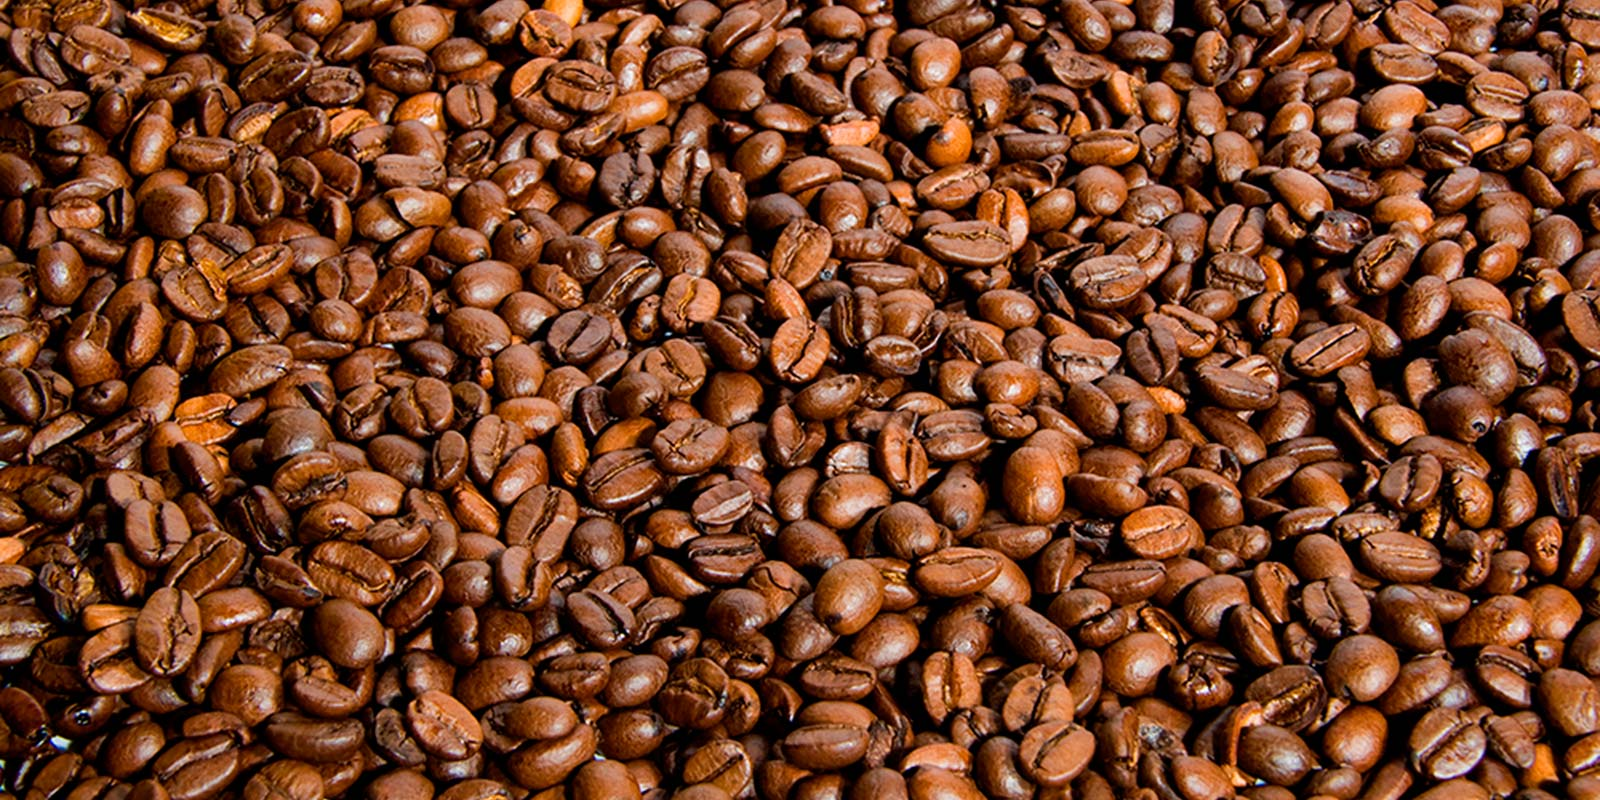 bg_coffee1-e1426080649570